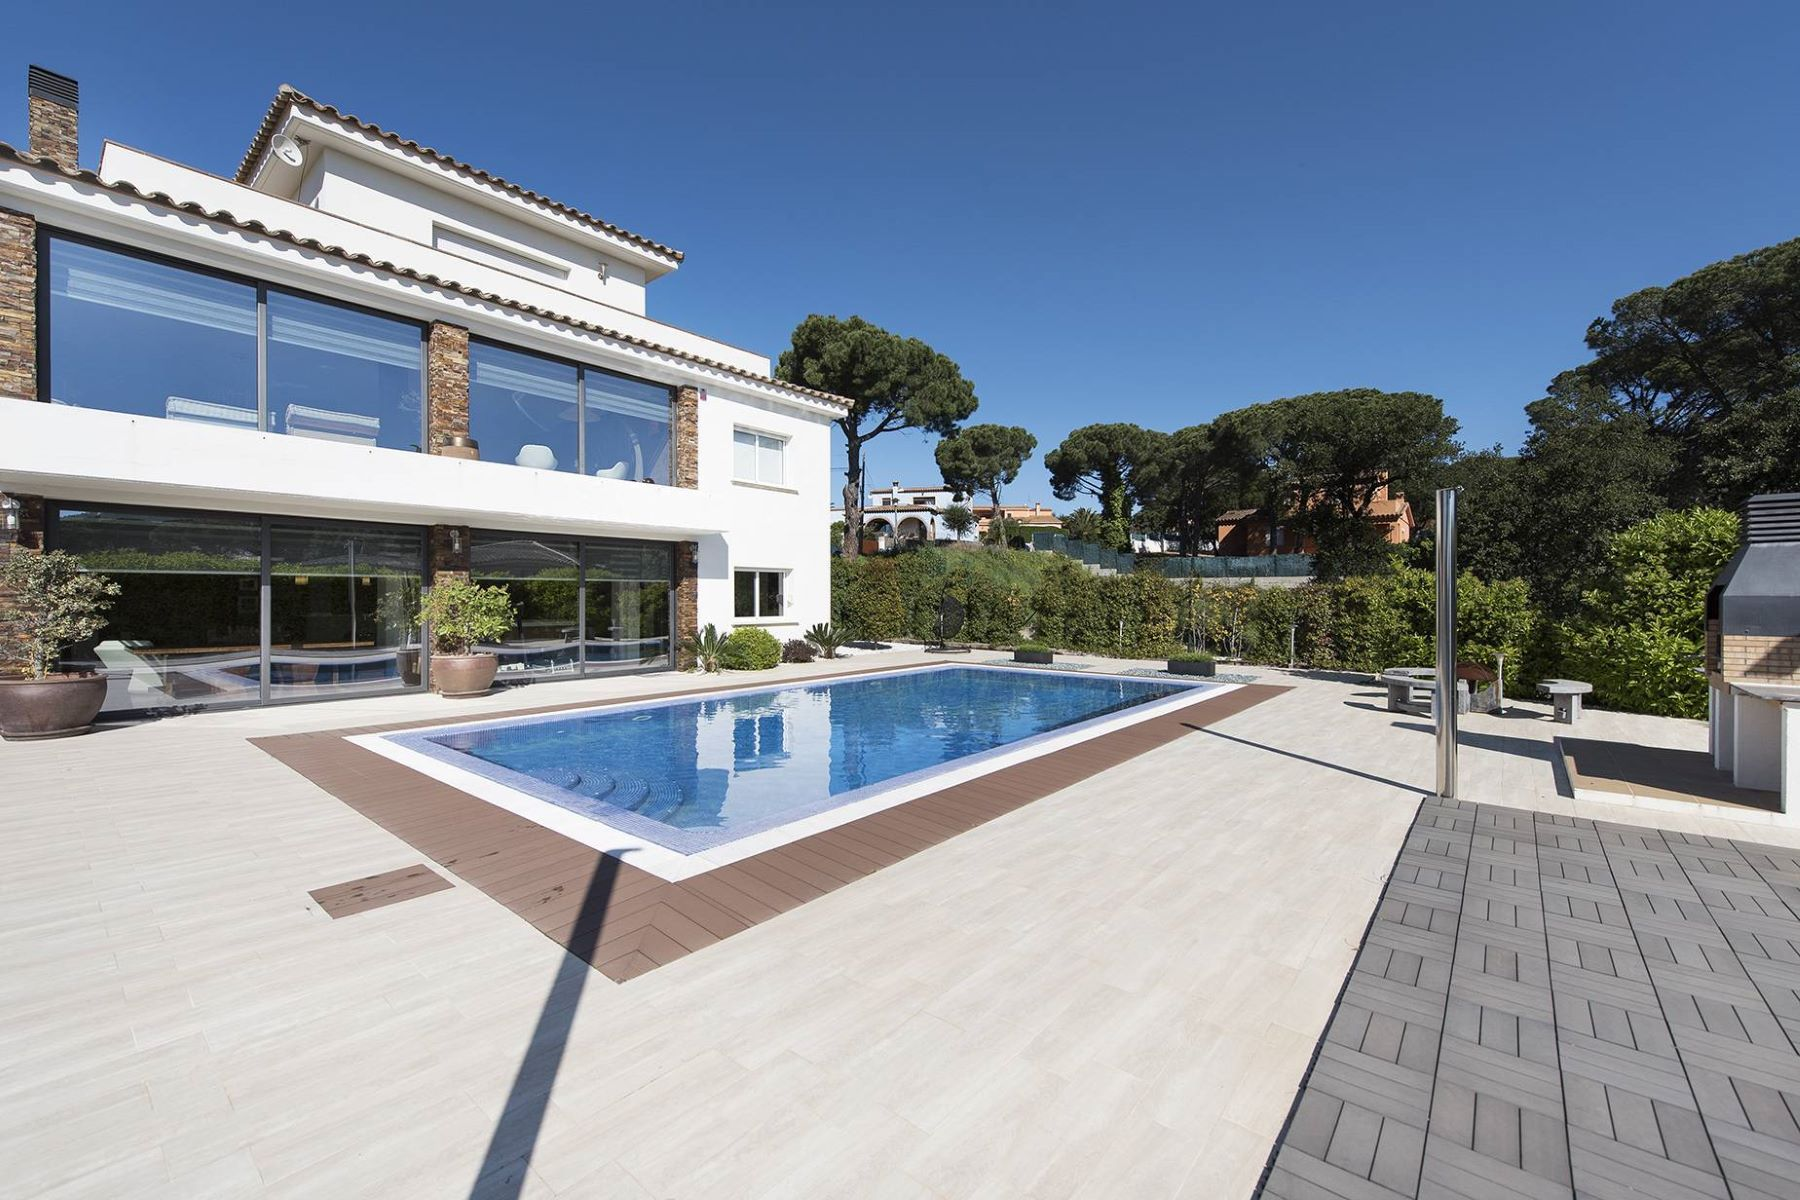 Single Family Home for Sale at Lovely house 5 minutes from the beach Sant Antoni De Calonge, Costa Brava, 17252 Spain